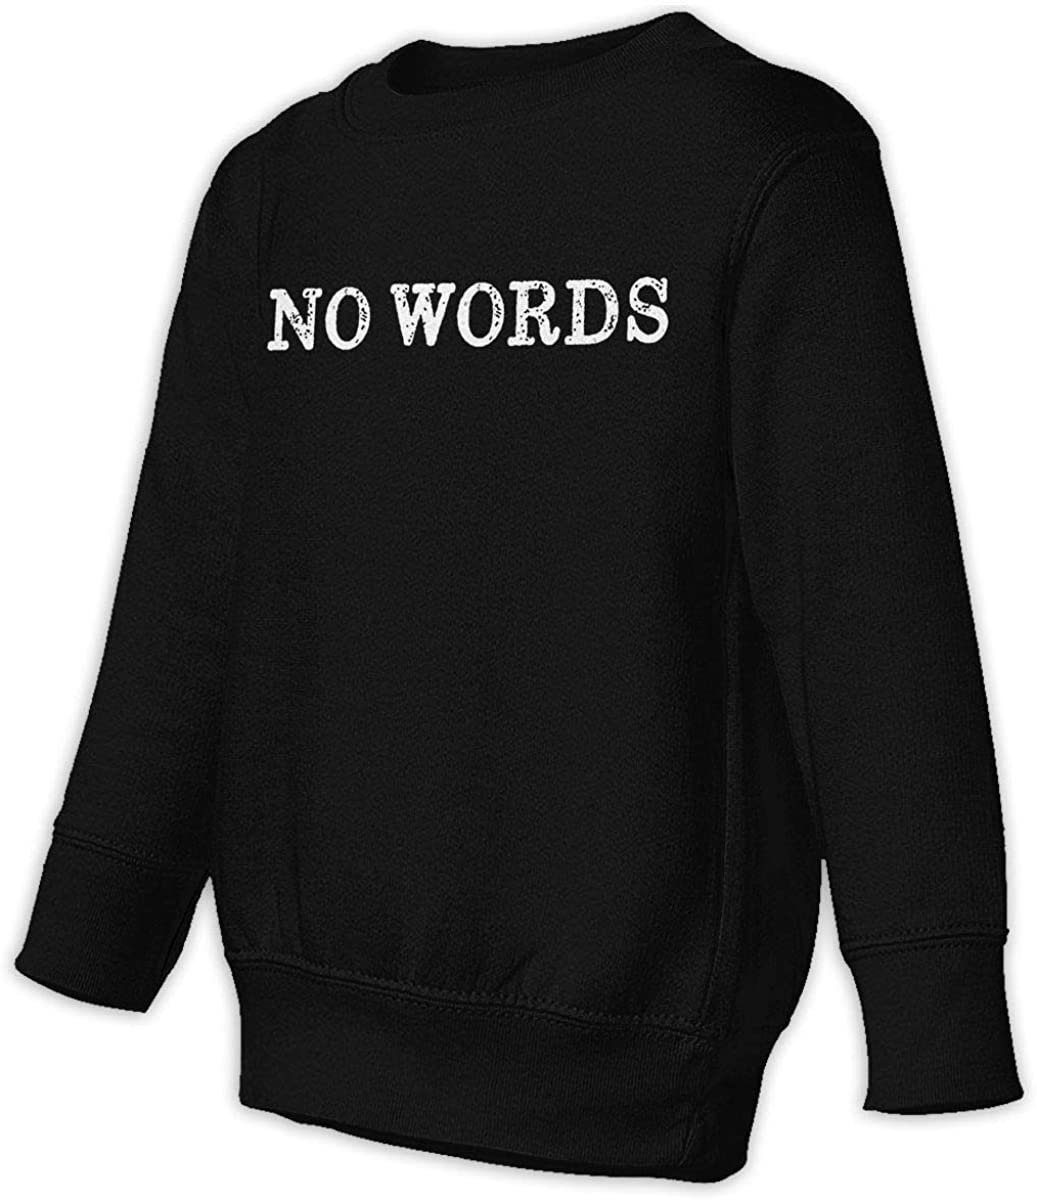 No Fist No Fun Boys Girls Pullover Sweaters Crewneck Sweatshirts Clothes for 2-6 Years Old Children